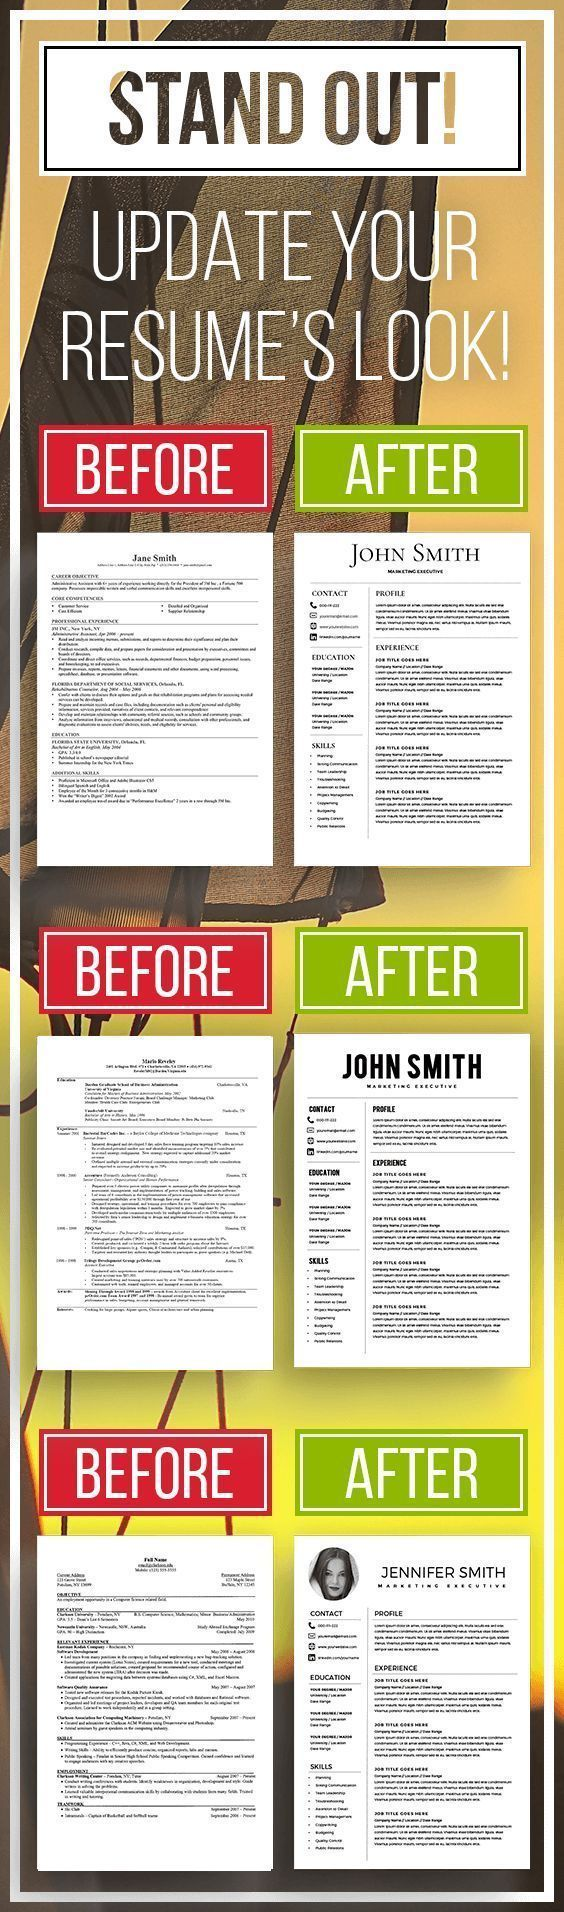 Cv Templates Design%0A cv template  resume template  minamilist resume  resume template word  creative  resume